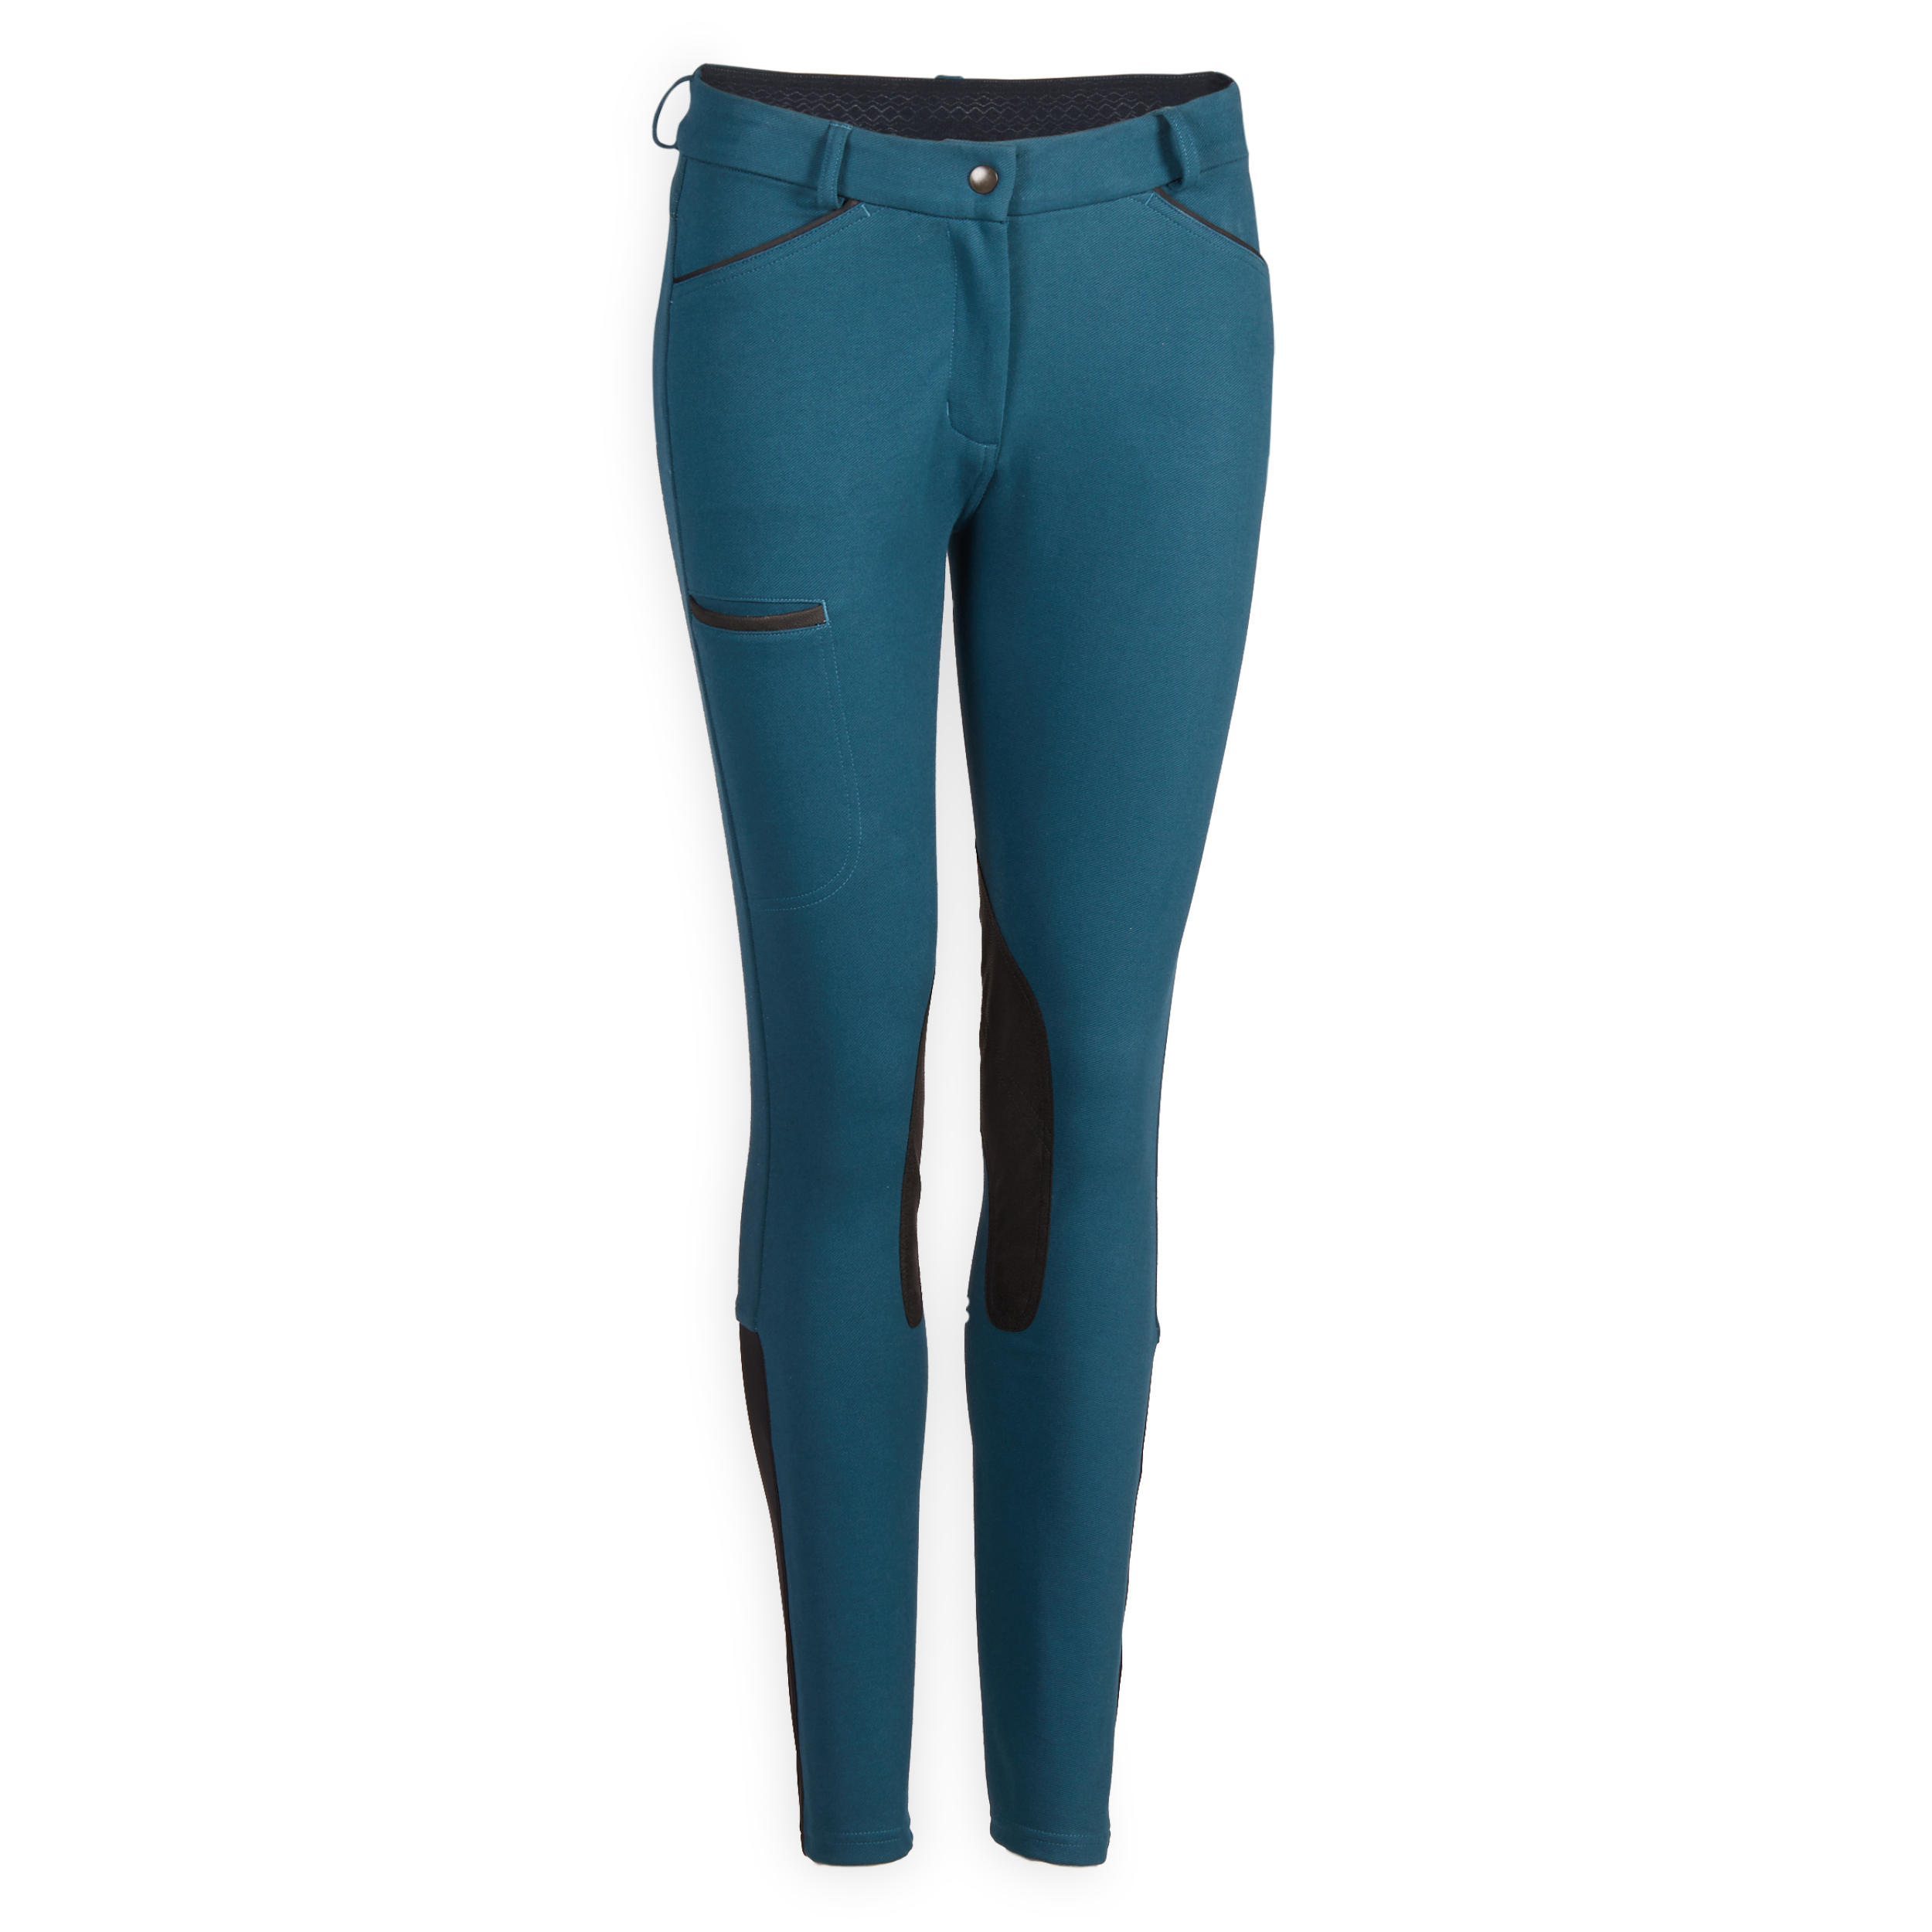 Pantalon STABLE 150 ponei